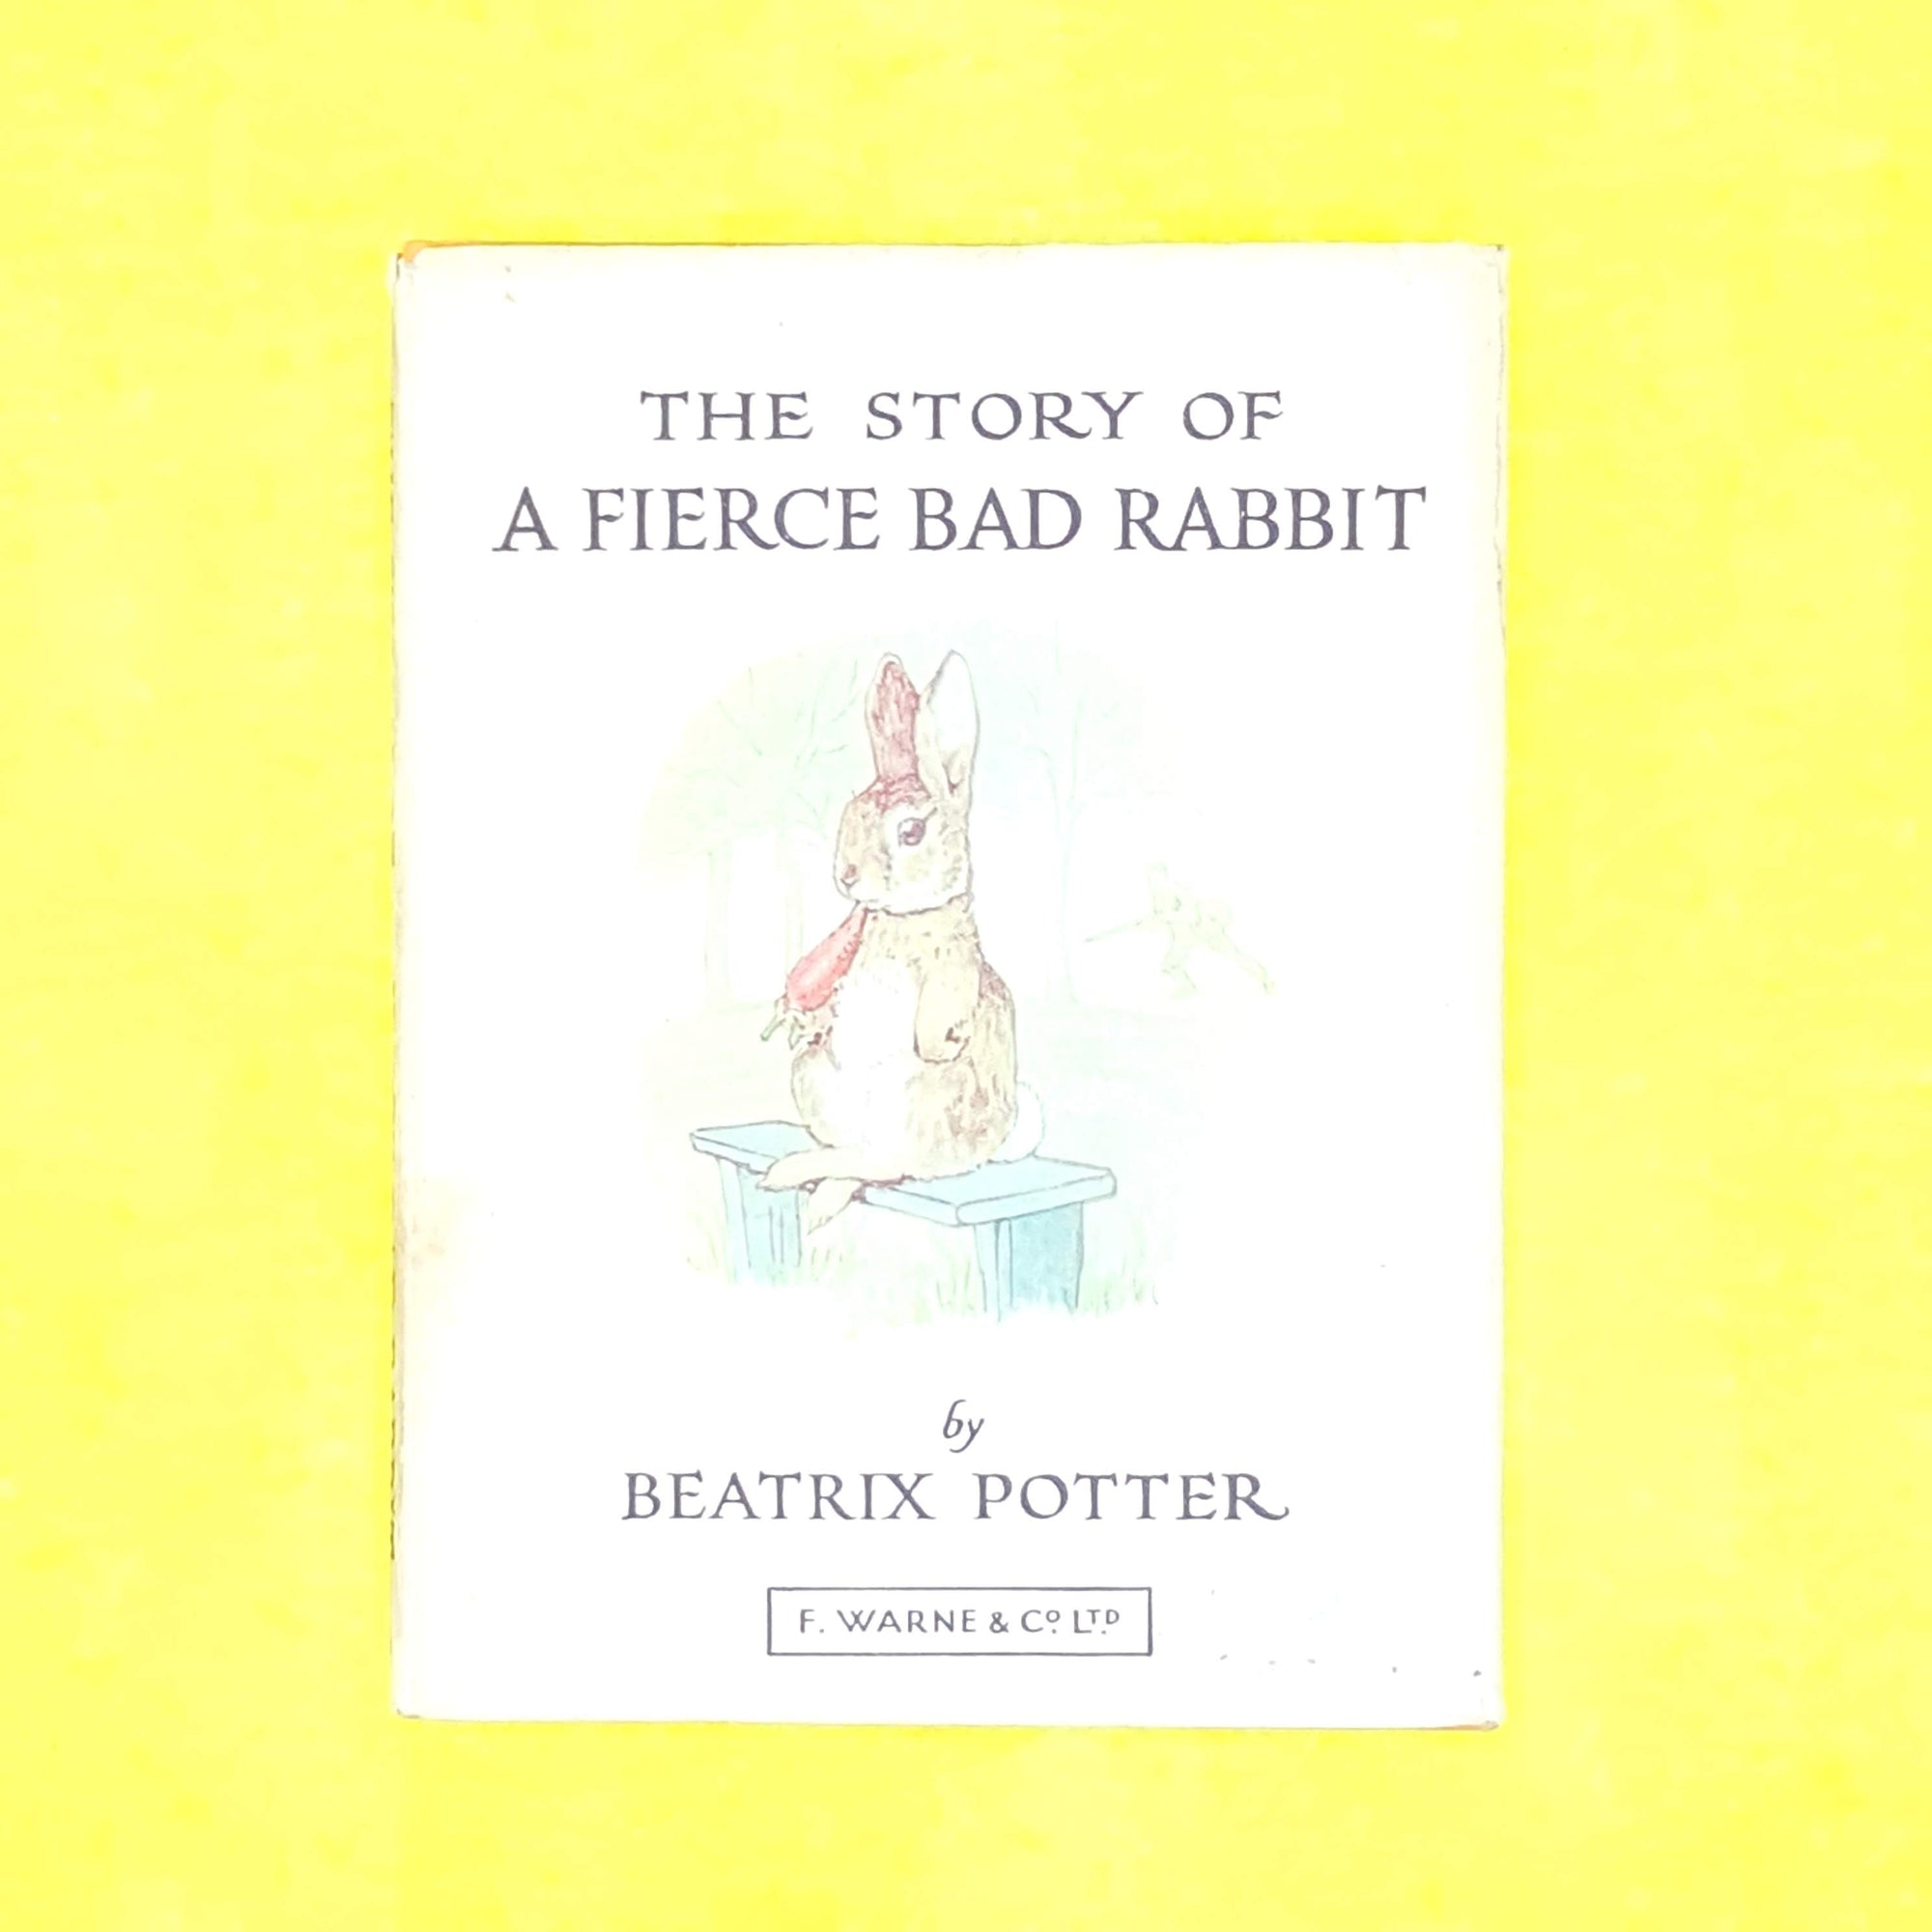 childrens-books-decorative-thrift-patterned-country-house-library-beatrix-potter-antique-old-fierce-bad-rabbit-orange-classic-vintage-